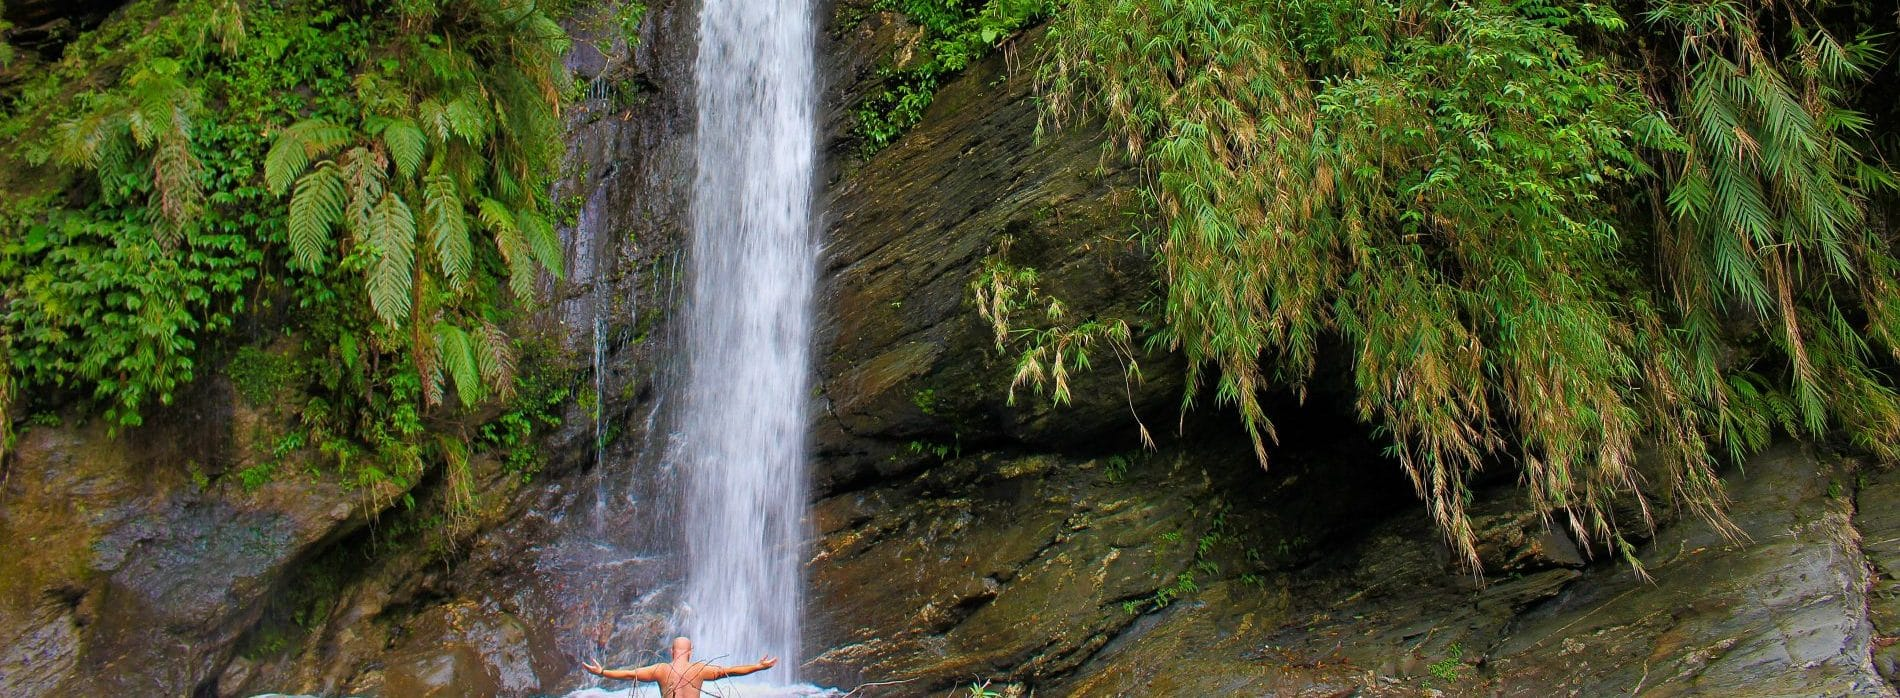 Mugua River Gorge: Waterfalls & Swimming Holes Adventure